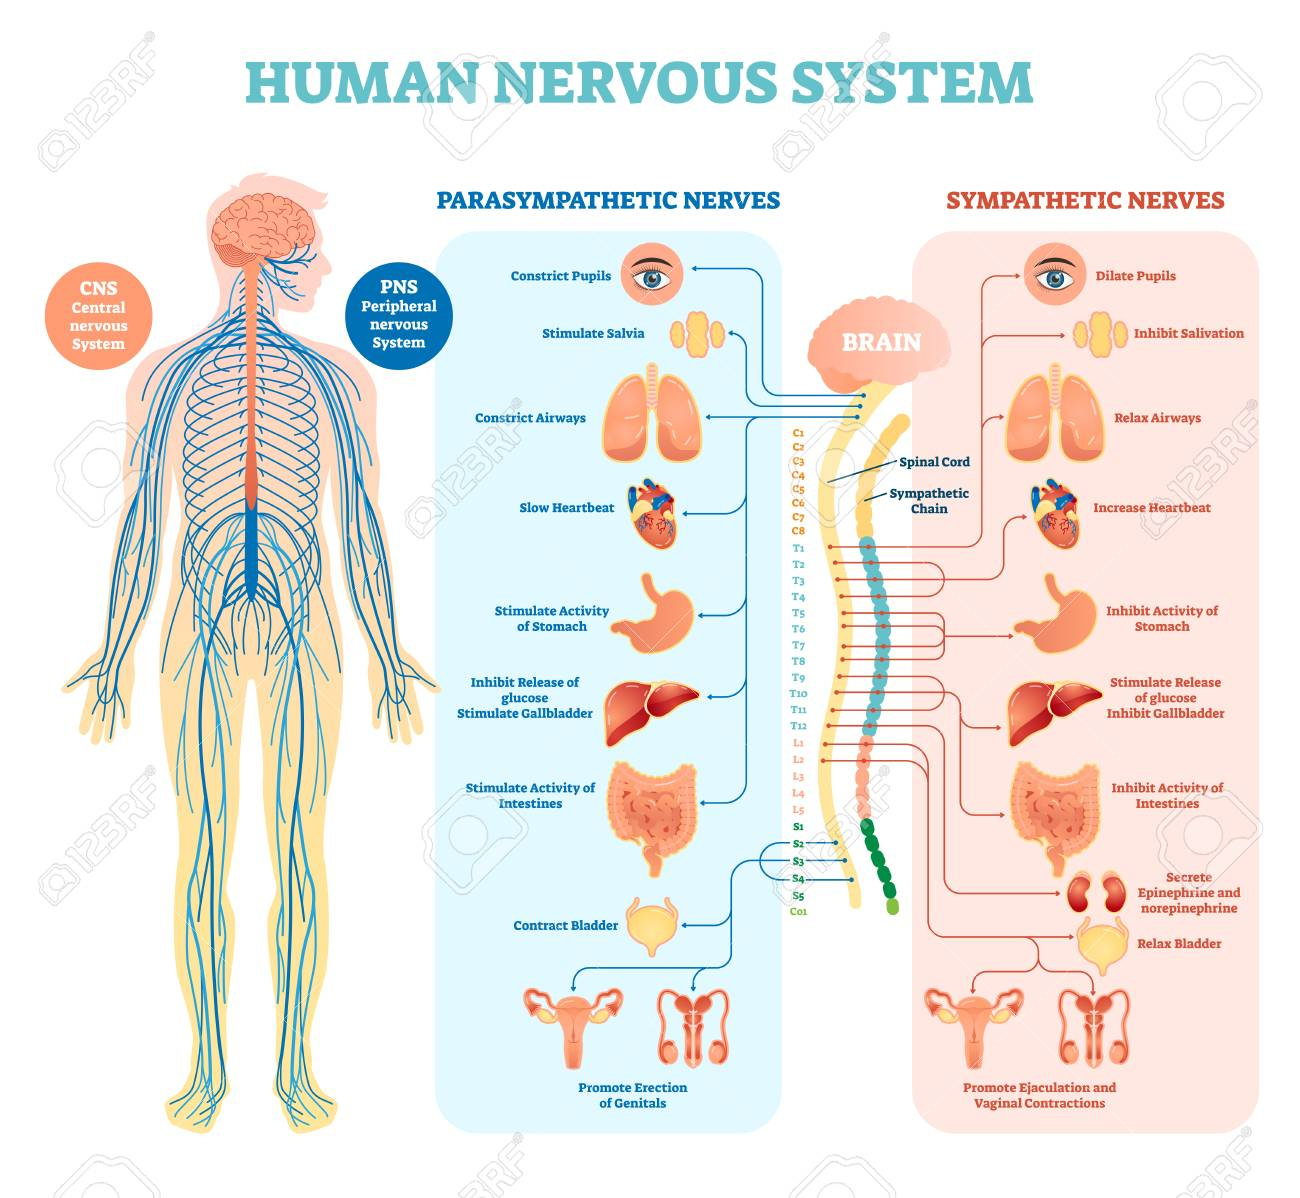 Human nervous system medical vector illustration diagram with parasympathetic, sympathetic nerves and all connected inner organs through brain and spinal cord. Educational information complete guide. - 97115613